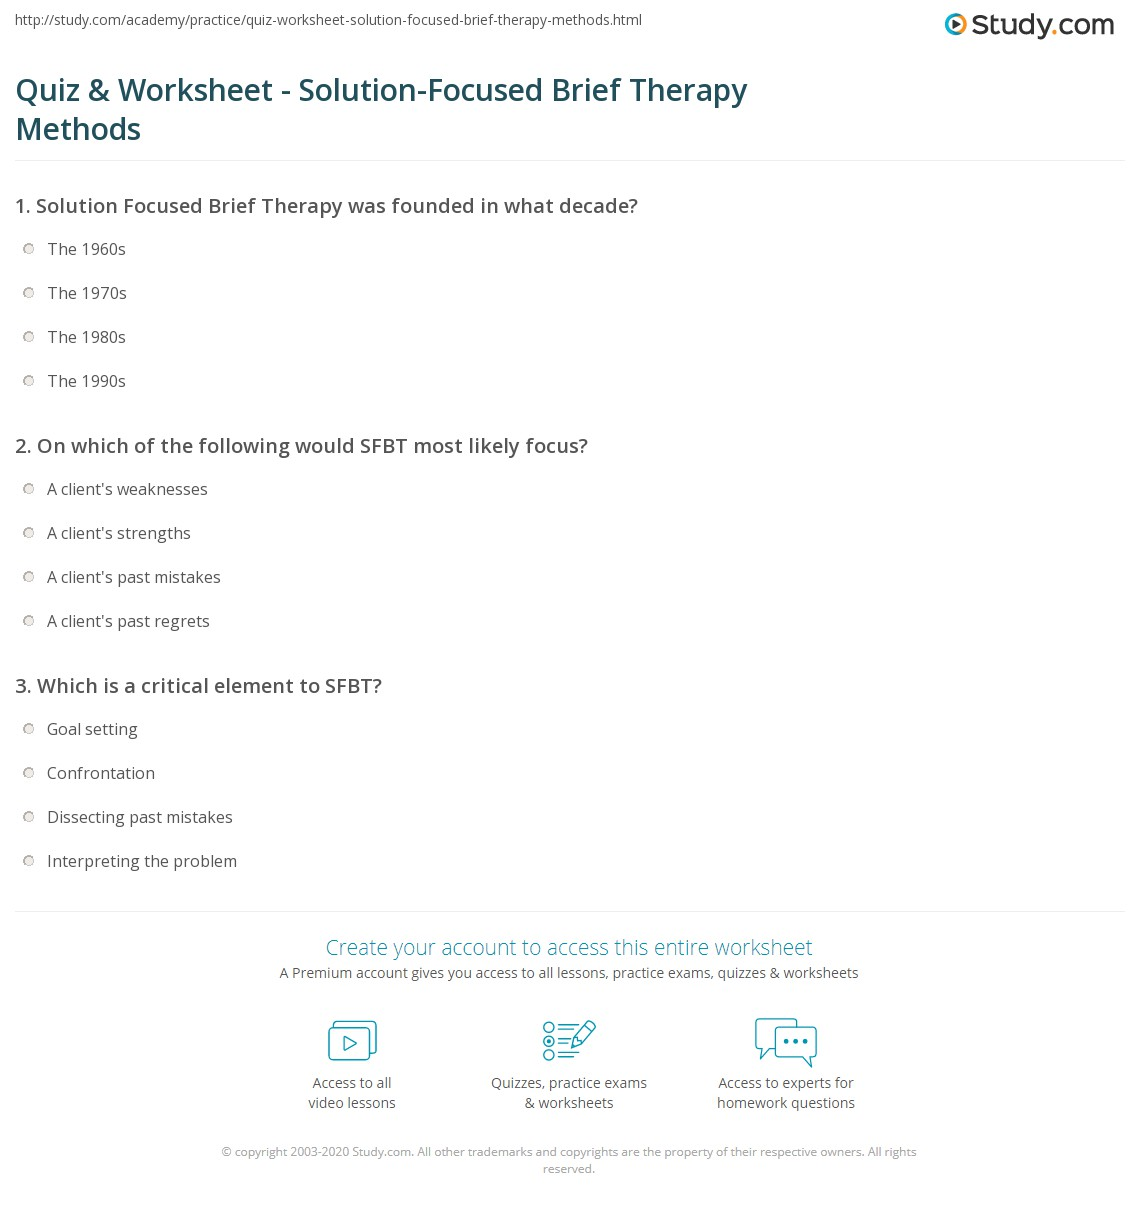 Quiz Worksheet SolutionFocused Brief Therapy Methods – Solution Focused Therapy Worksheets